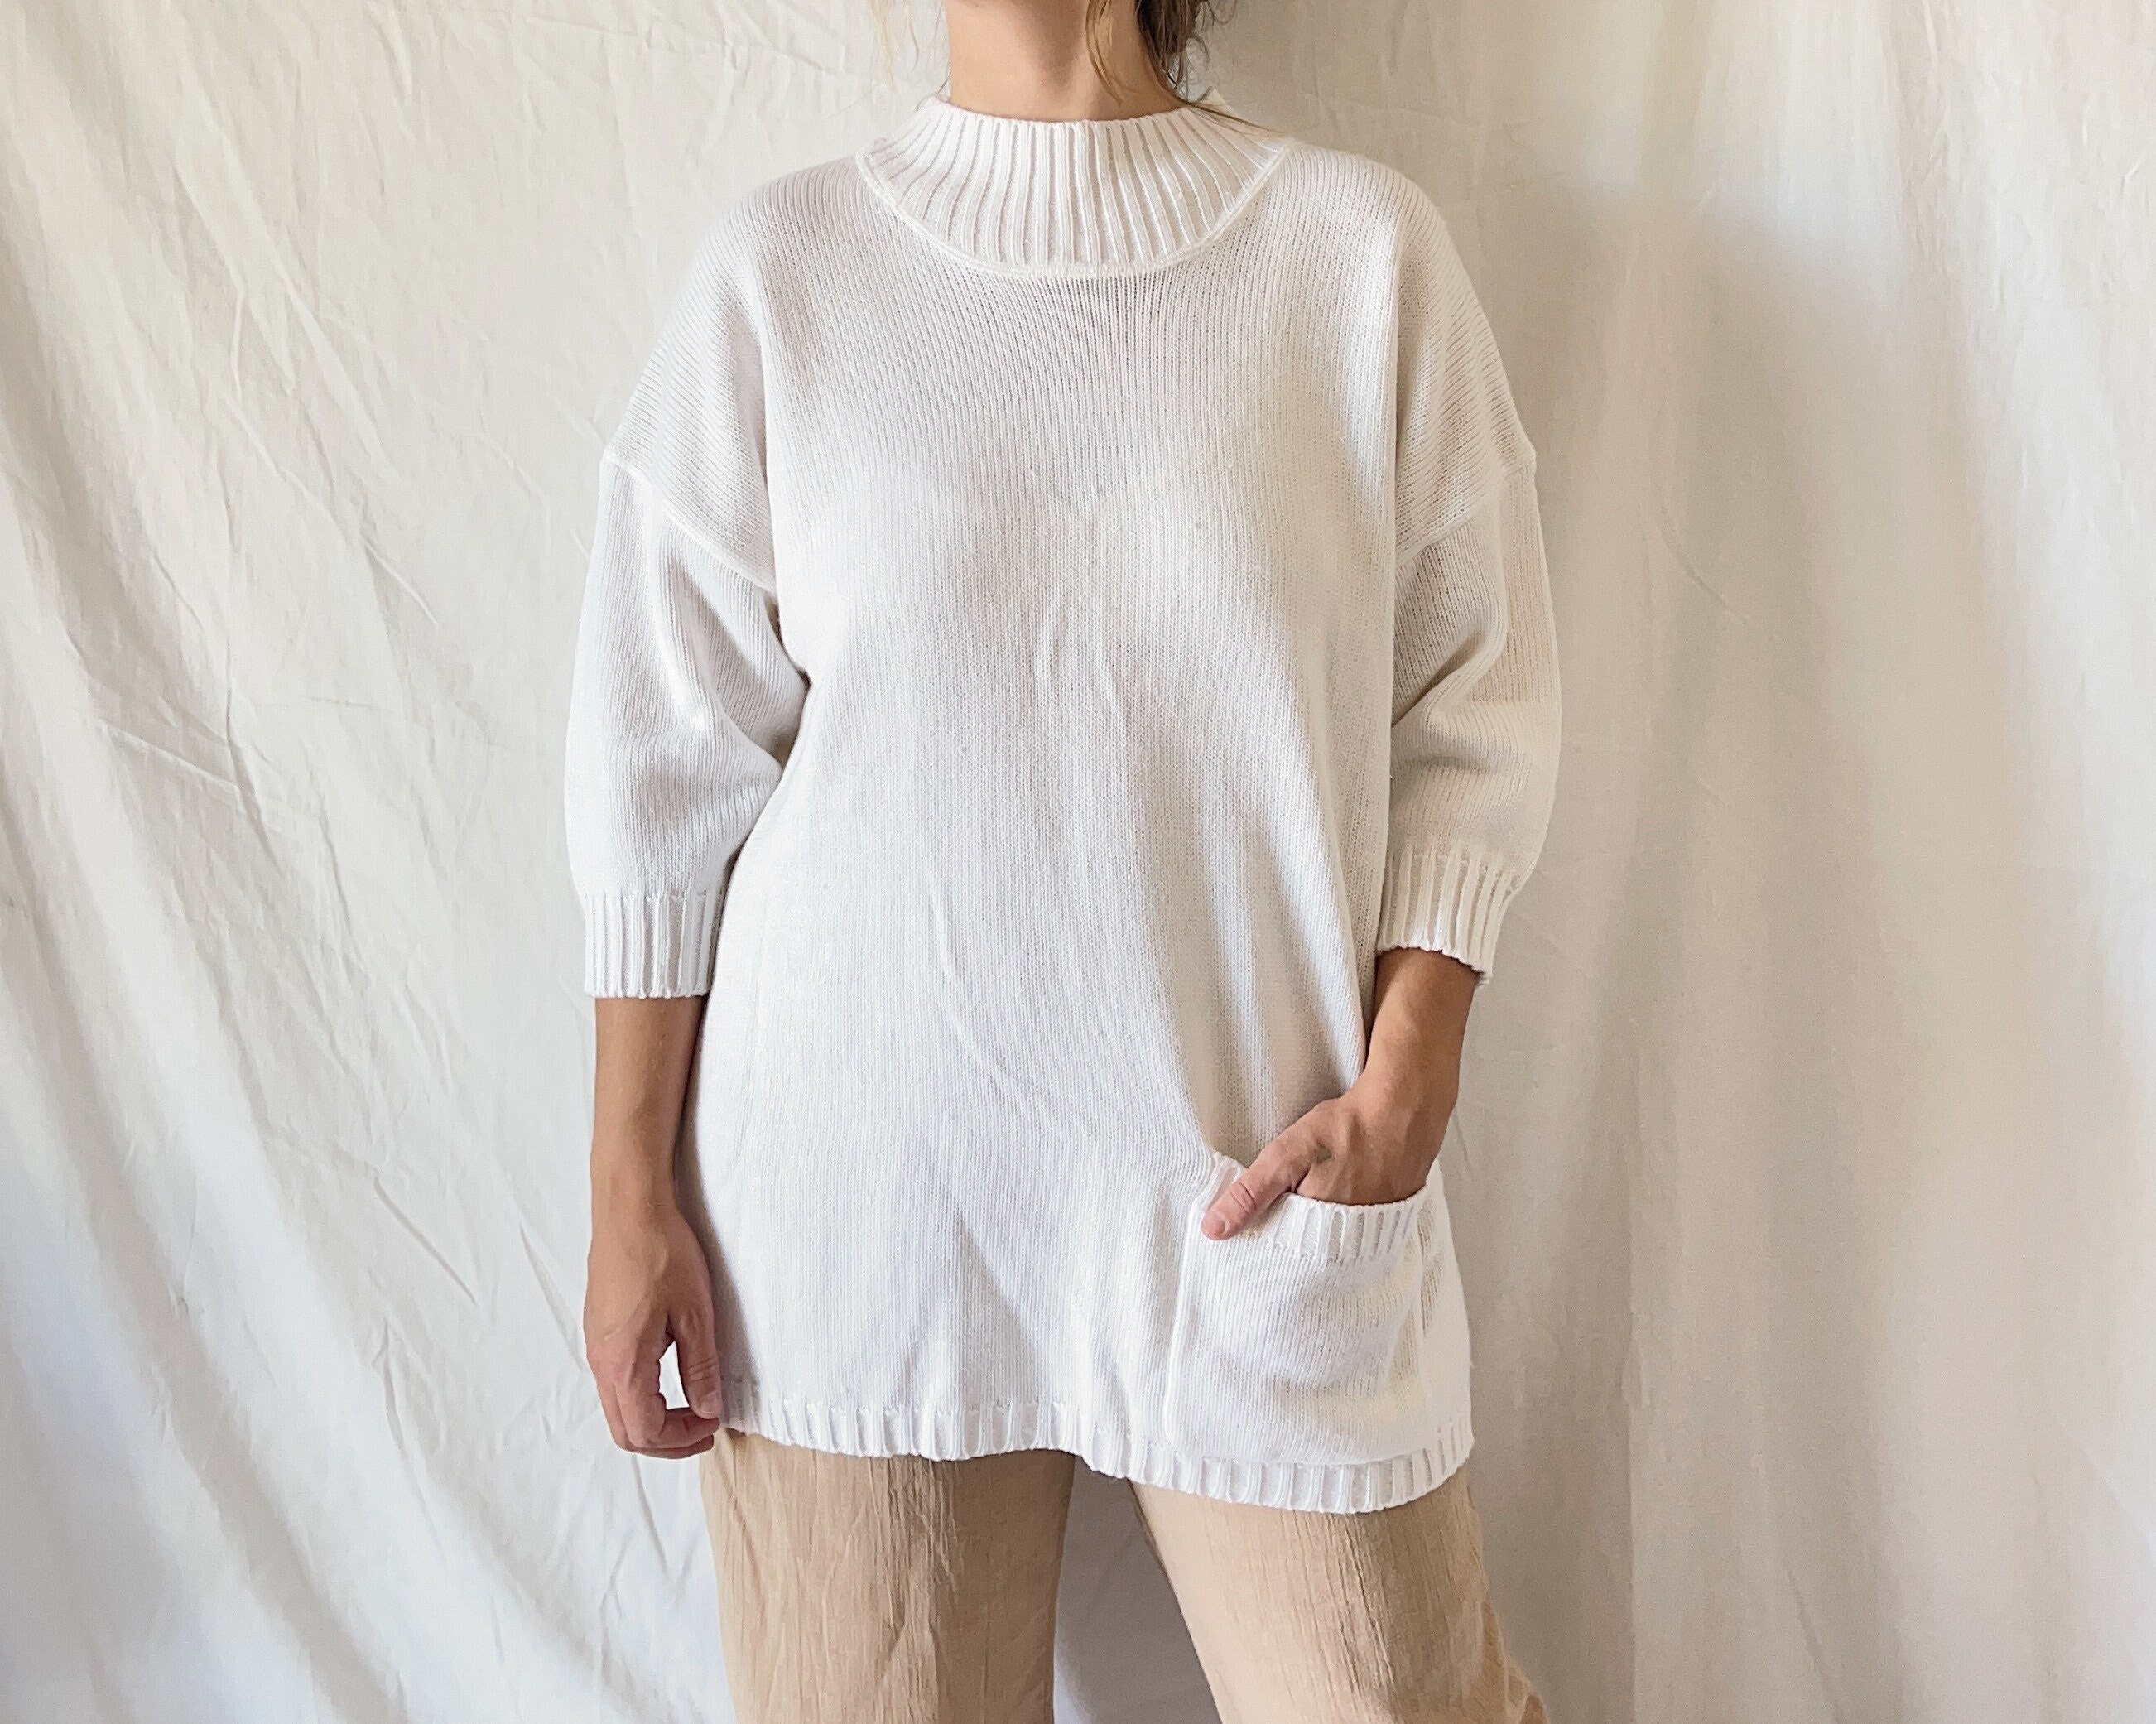 80s Sweatshirts, Sweaters, Vests | Women 1980S Cowlneck Tunic Sweater with Pocket $35.00 AT vintagedancer.com